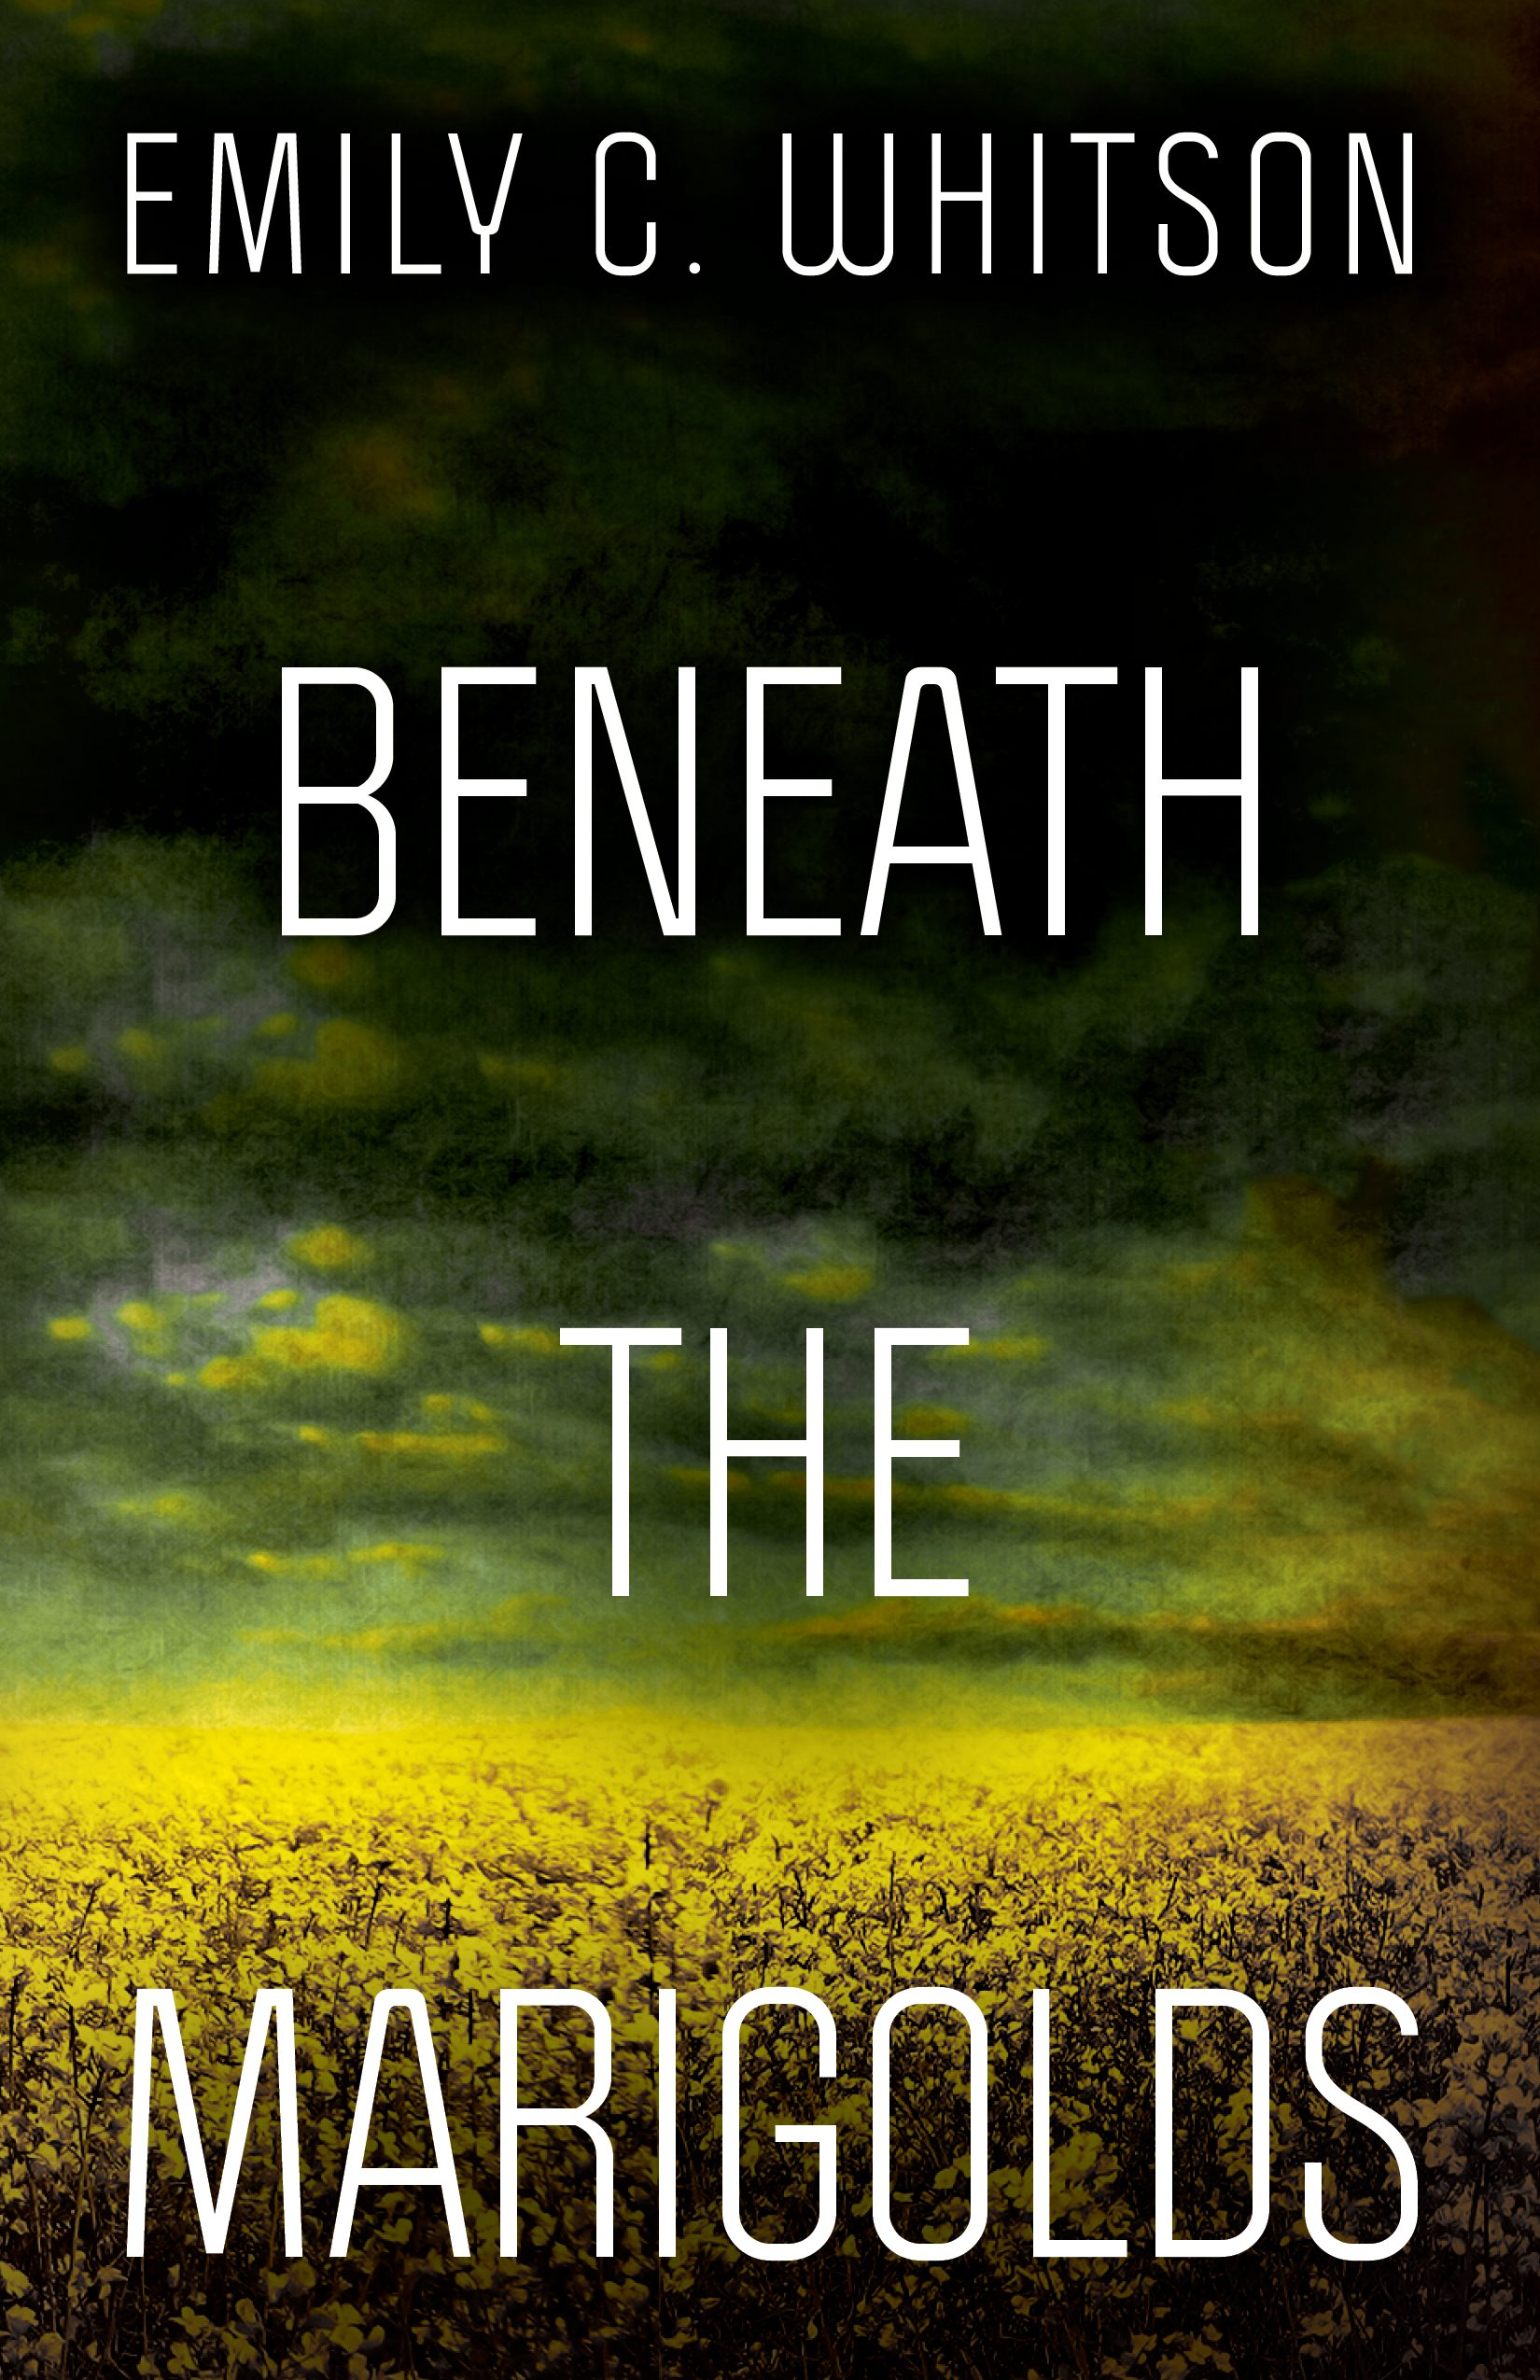 Beneath the Marigolds by Emily C. Whitson